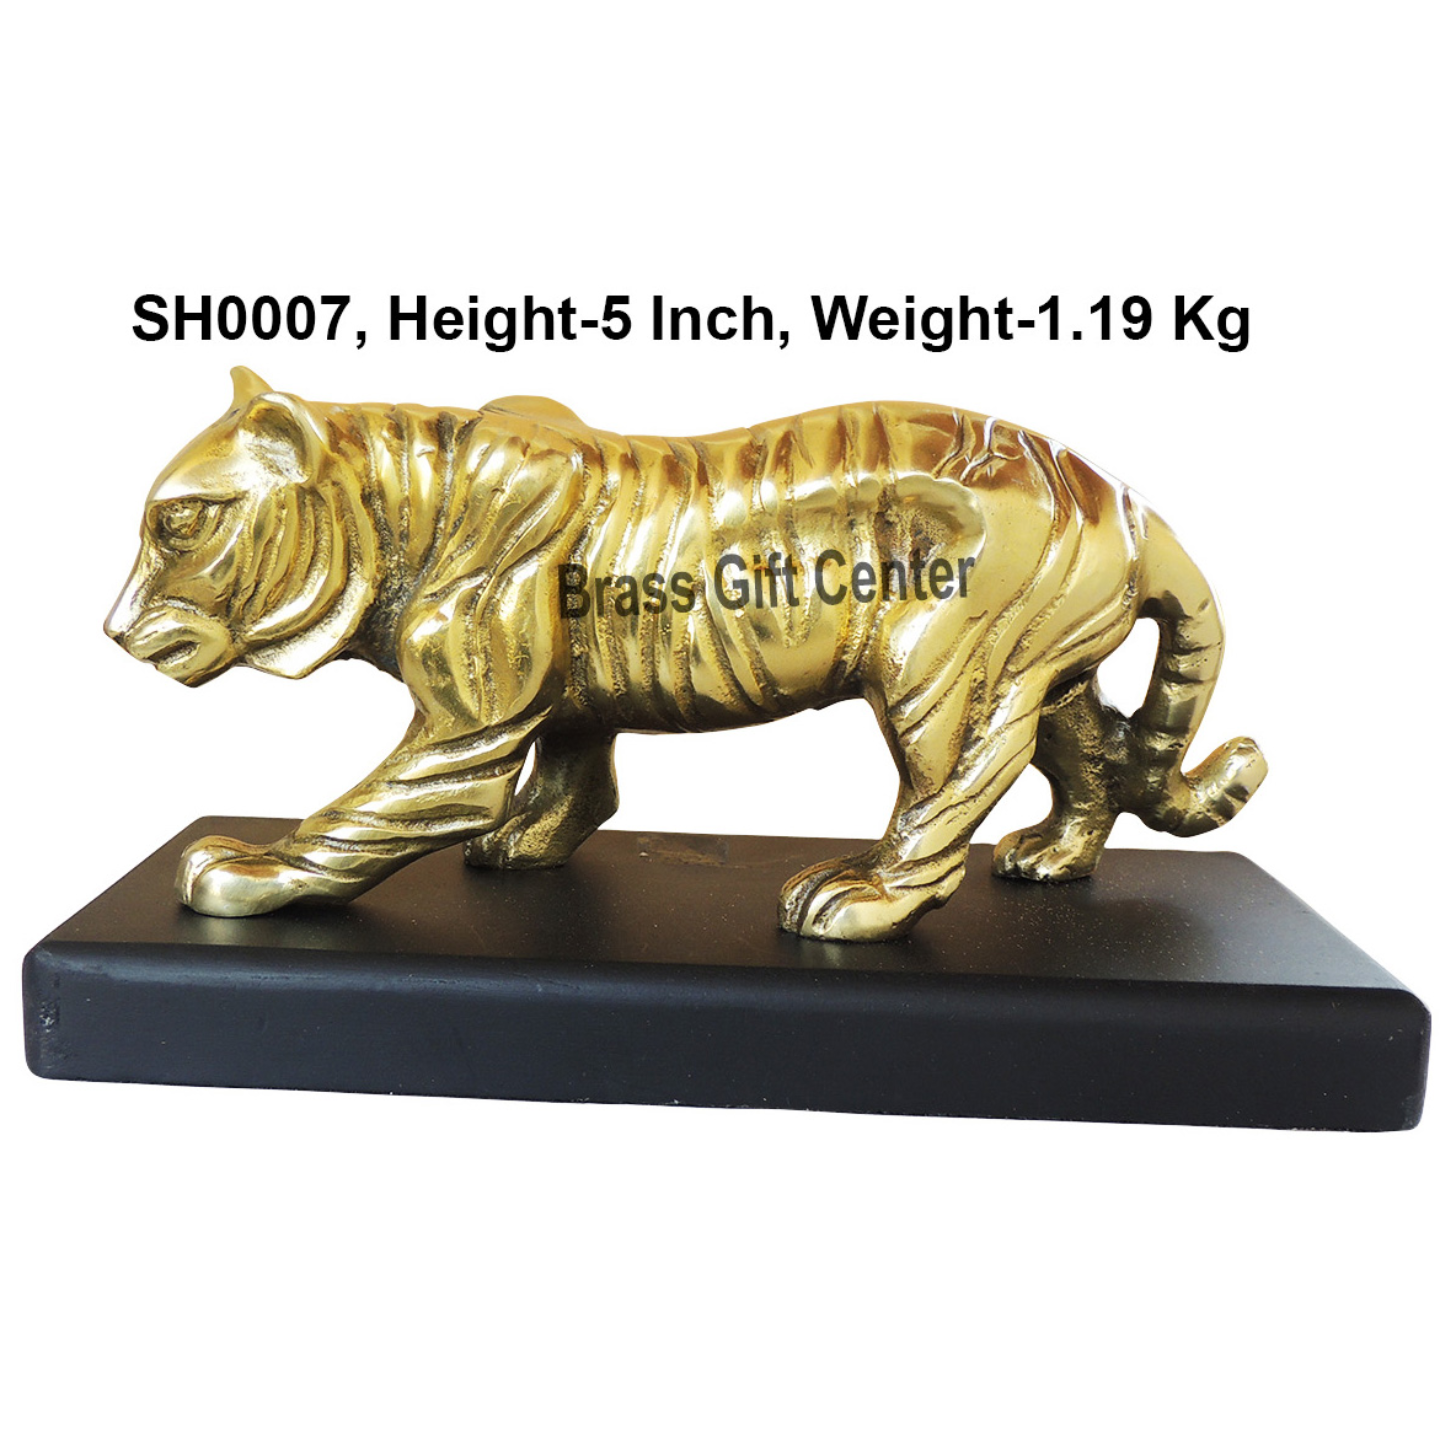 Metal Tiger Statue in Brass Finish with Wooden Base - 5 inch (SH0007)